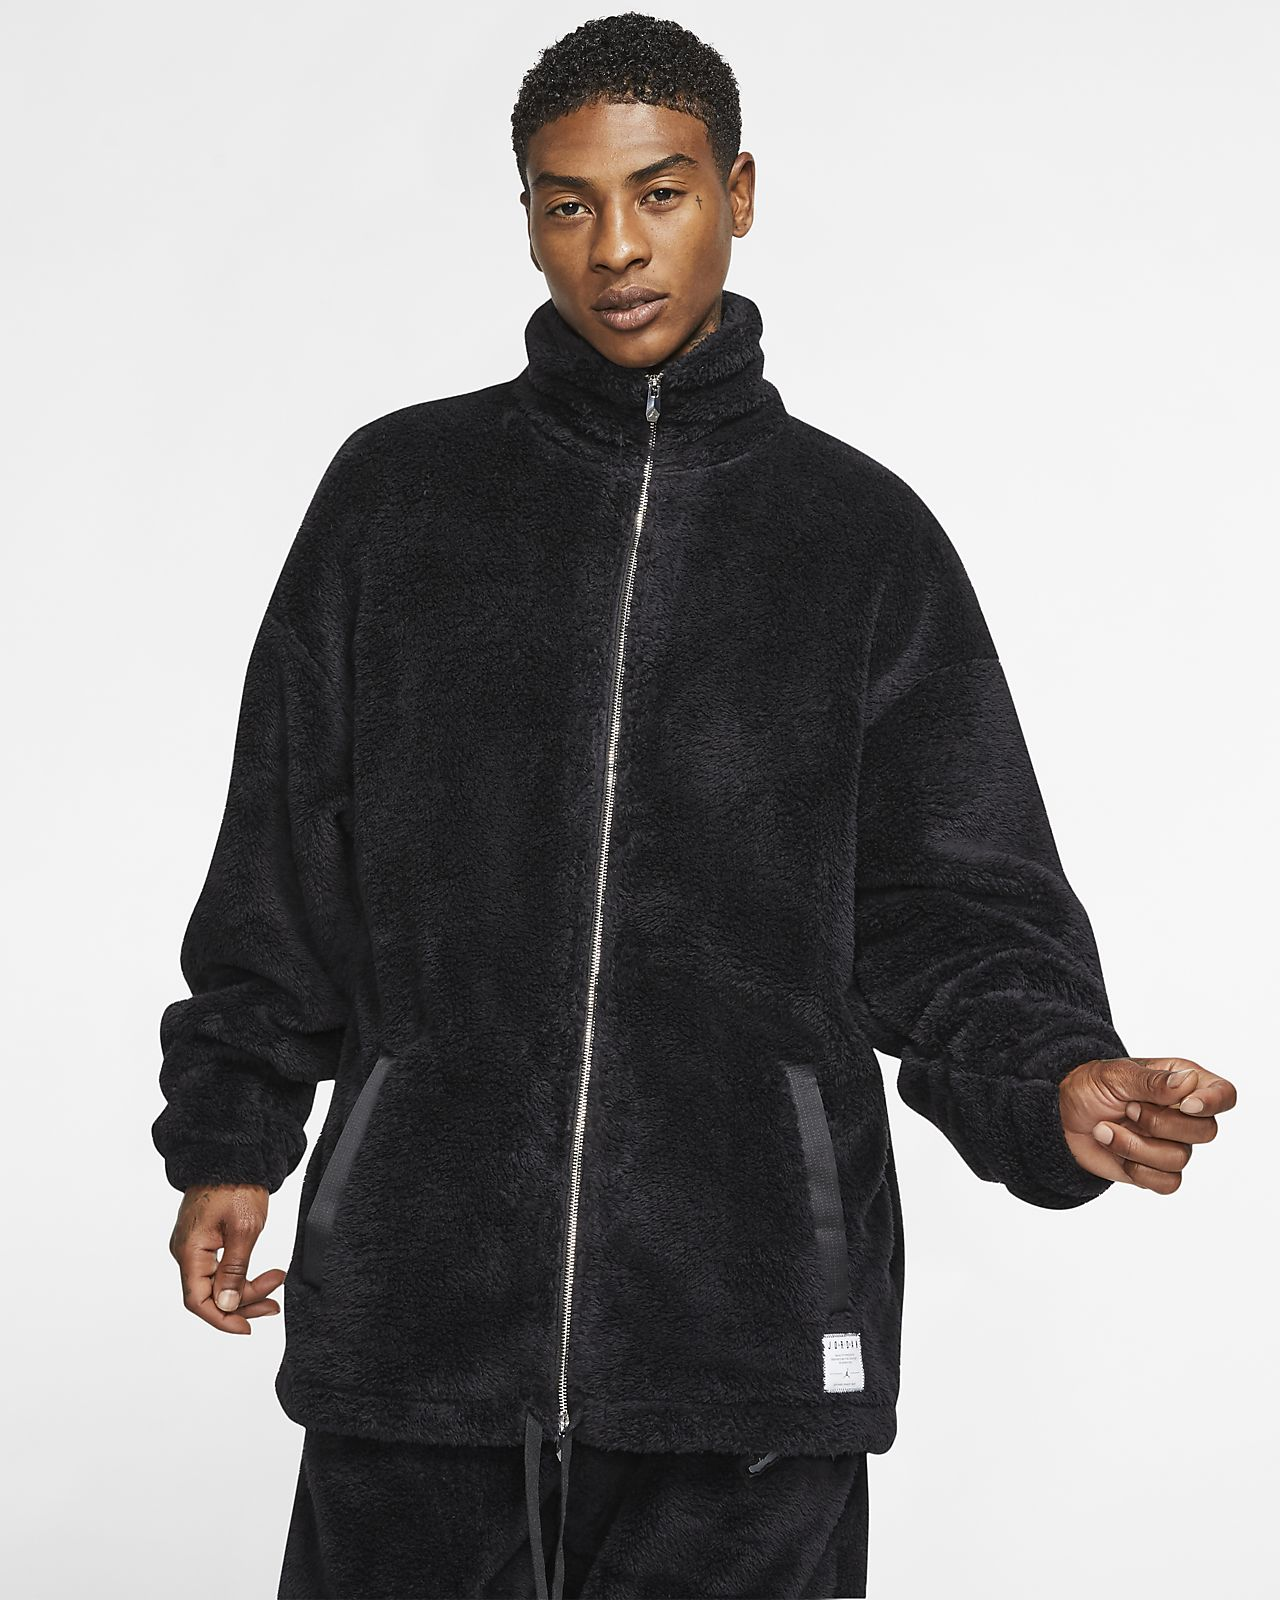 Jordan Black Cat Sherpa Coaches' Jacket